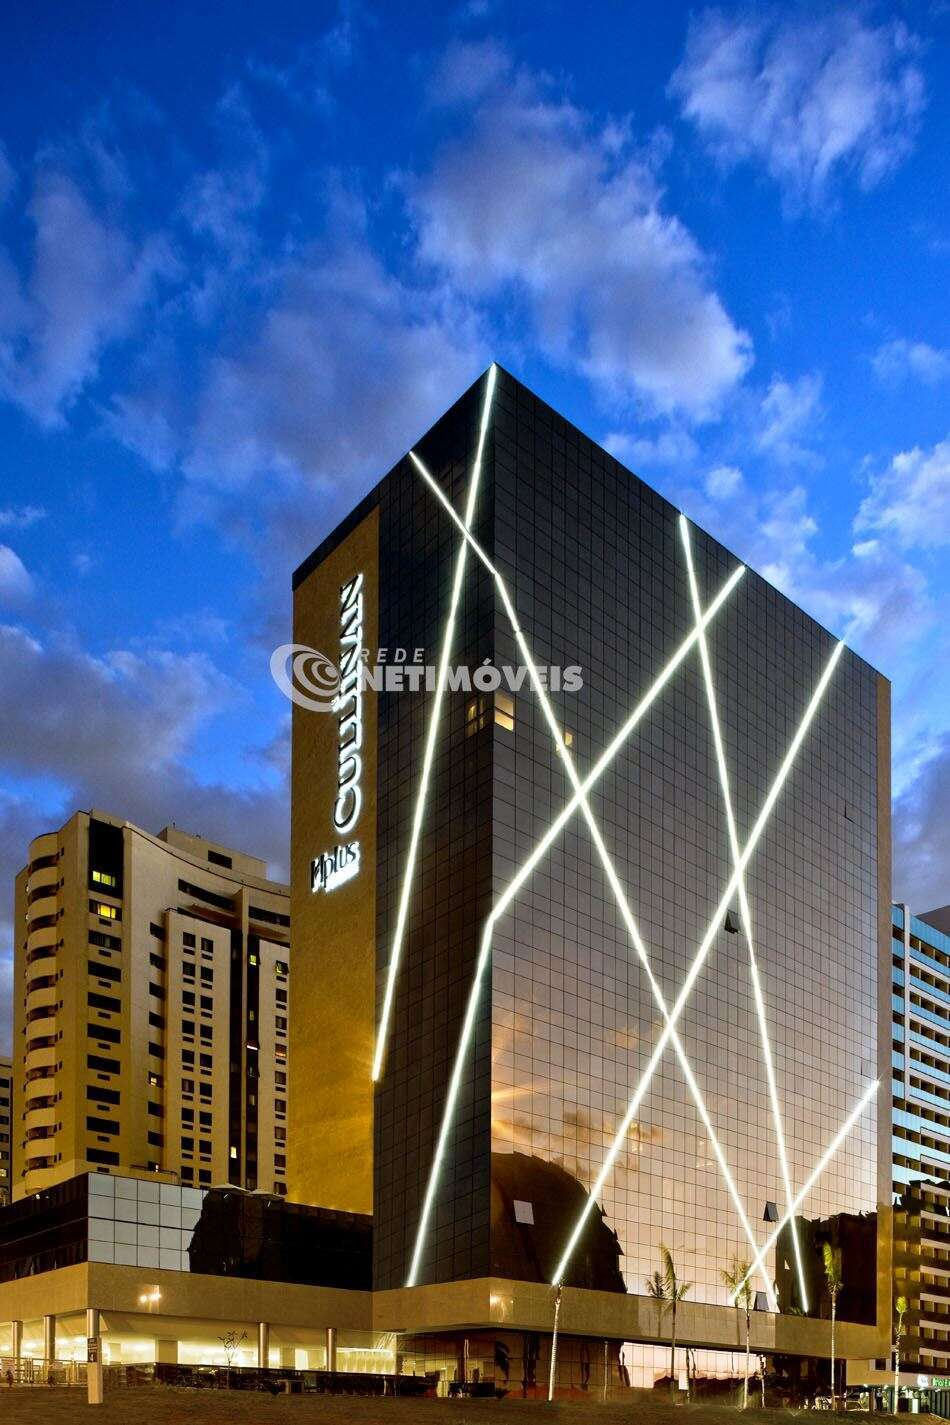 flat,apart-hotel,distrito federal,asa norte,brasília,eixo monumental,shopping,torre tv,